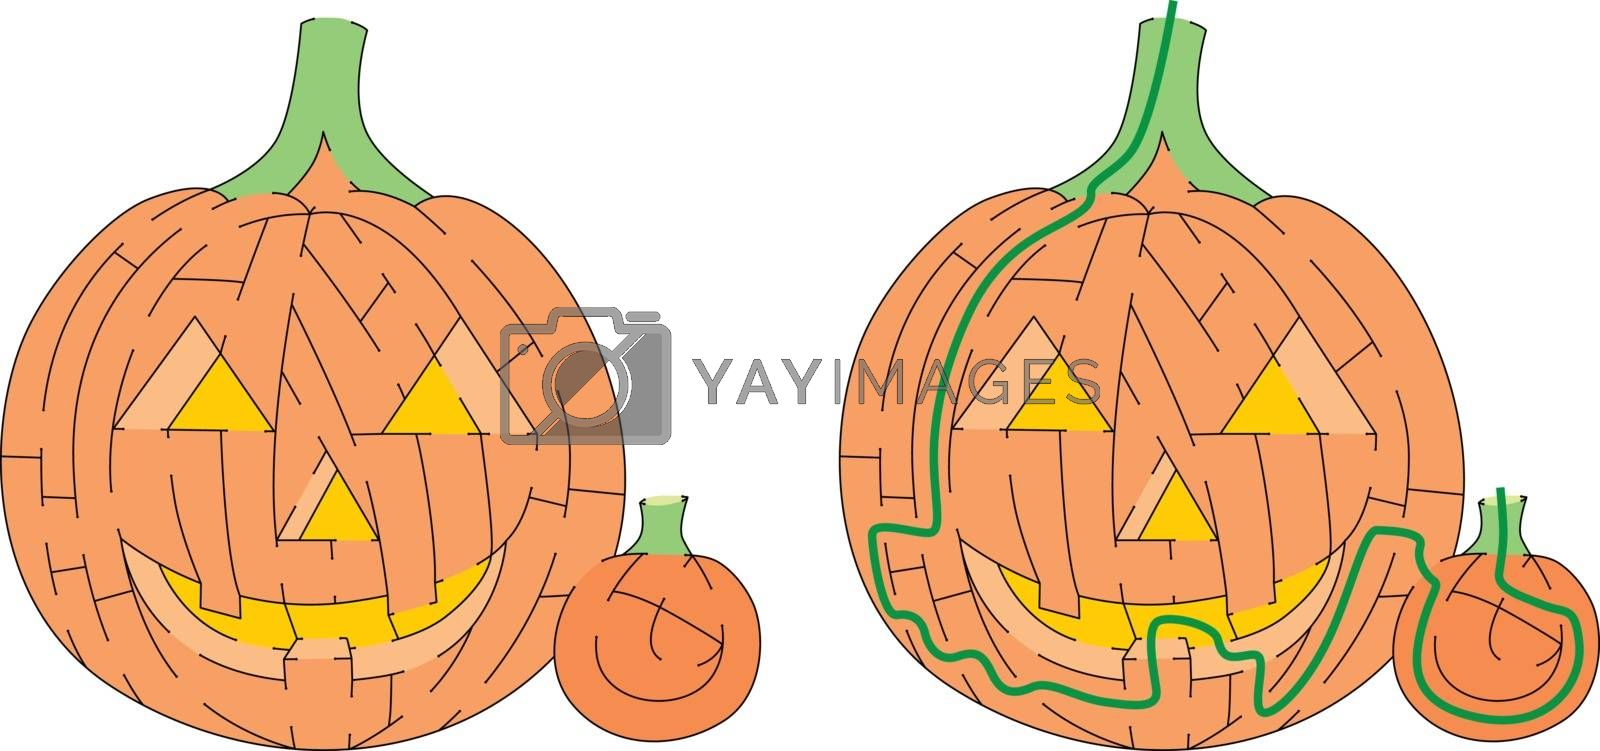 Jack O' Lantern maze for kids with a solution